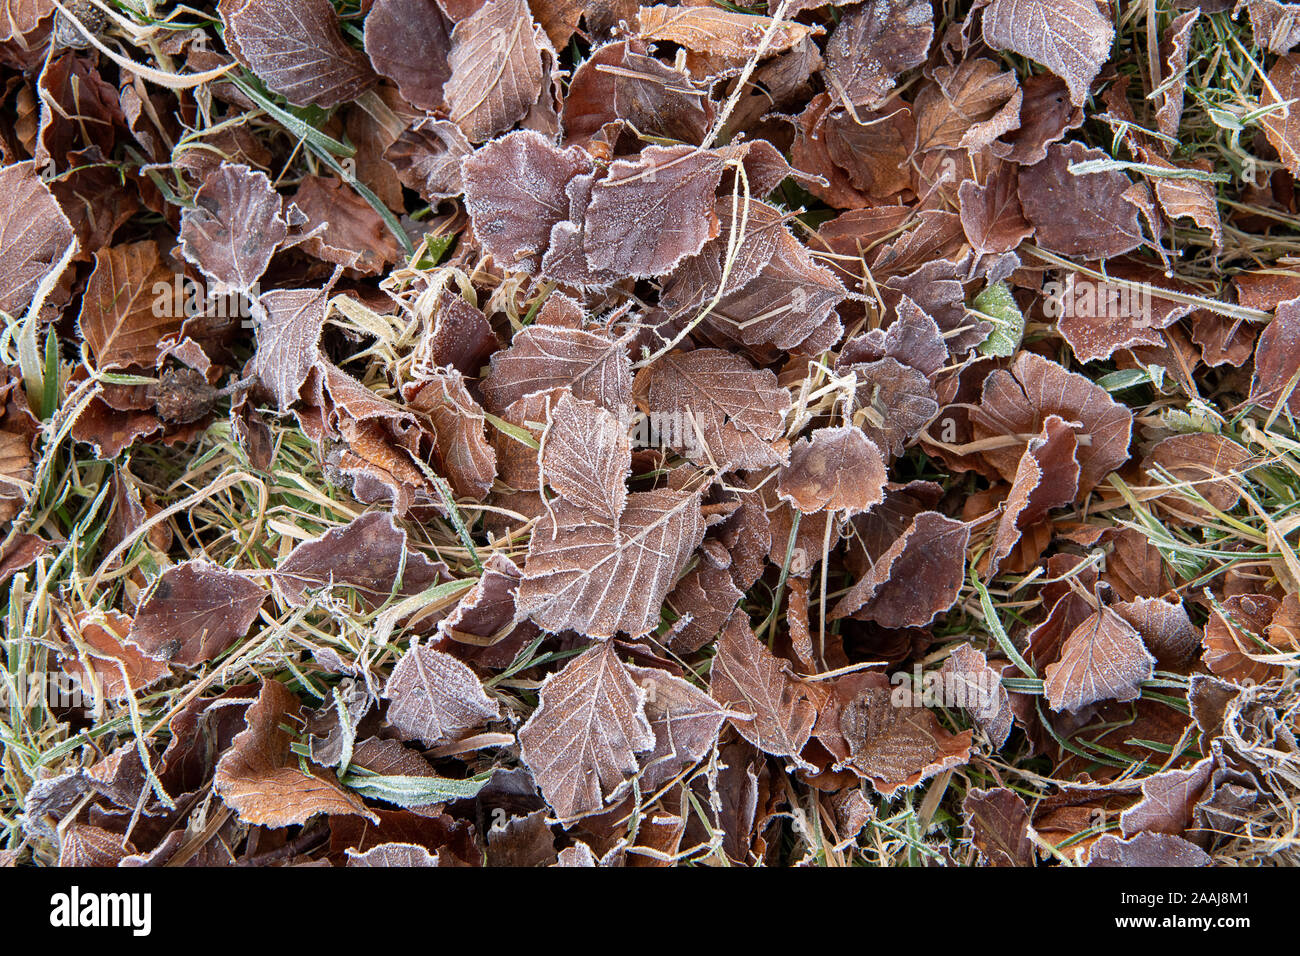 Beech leaves on floor covered in hoar frost on a late autumn morning. North Yorkshire, UK. Stock Photo